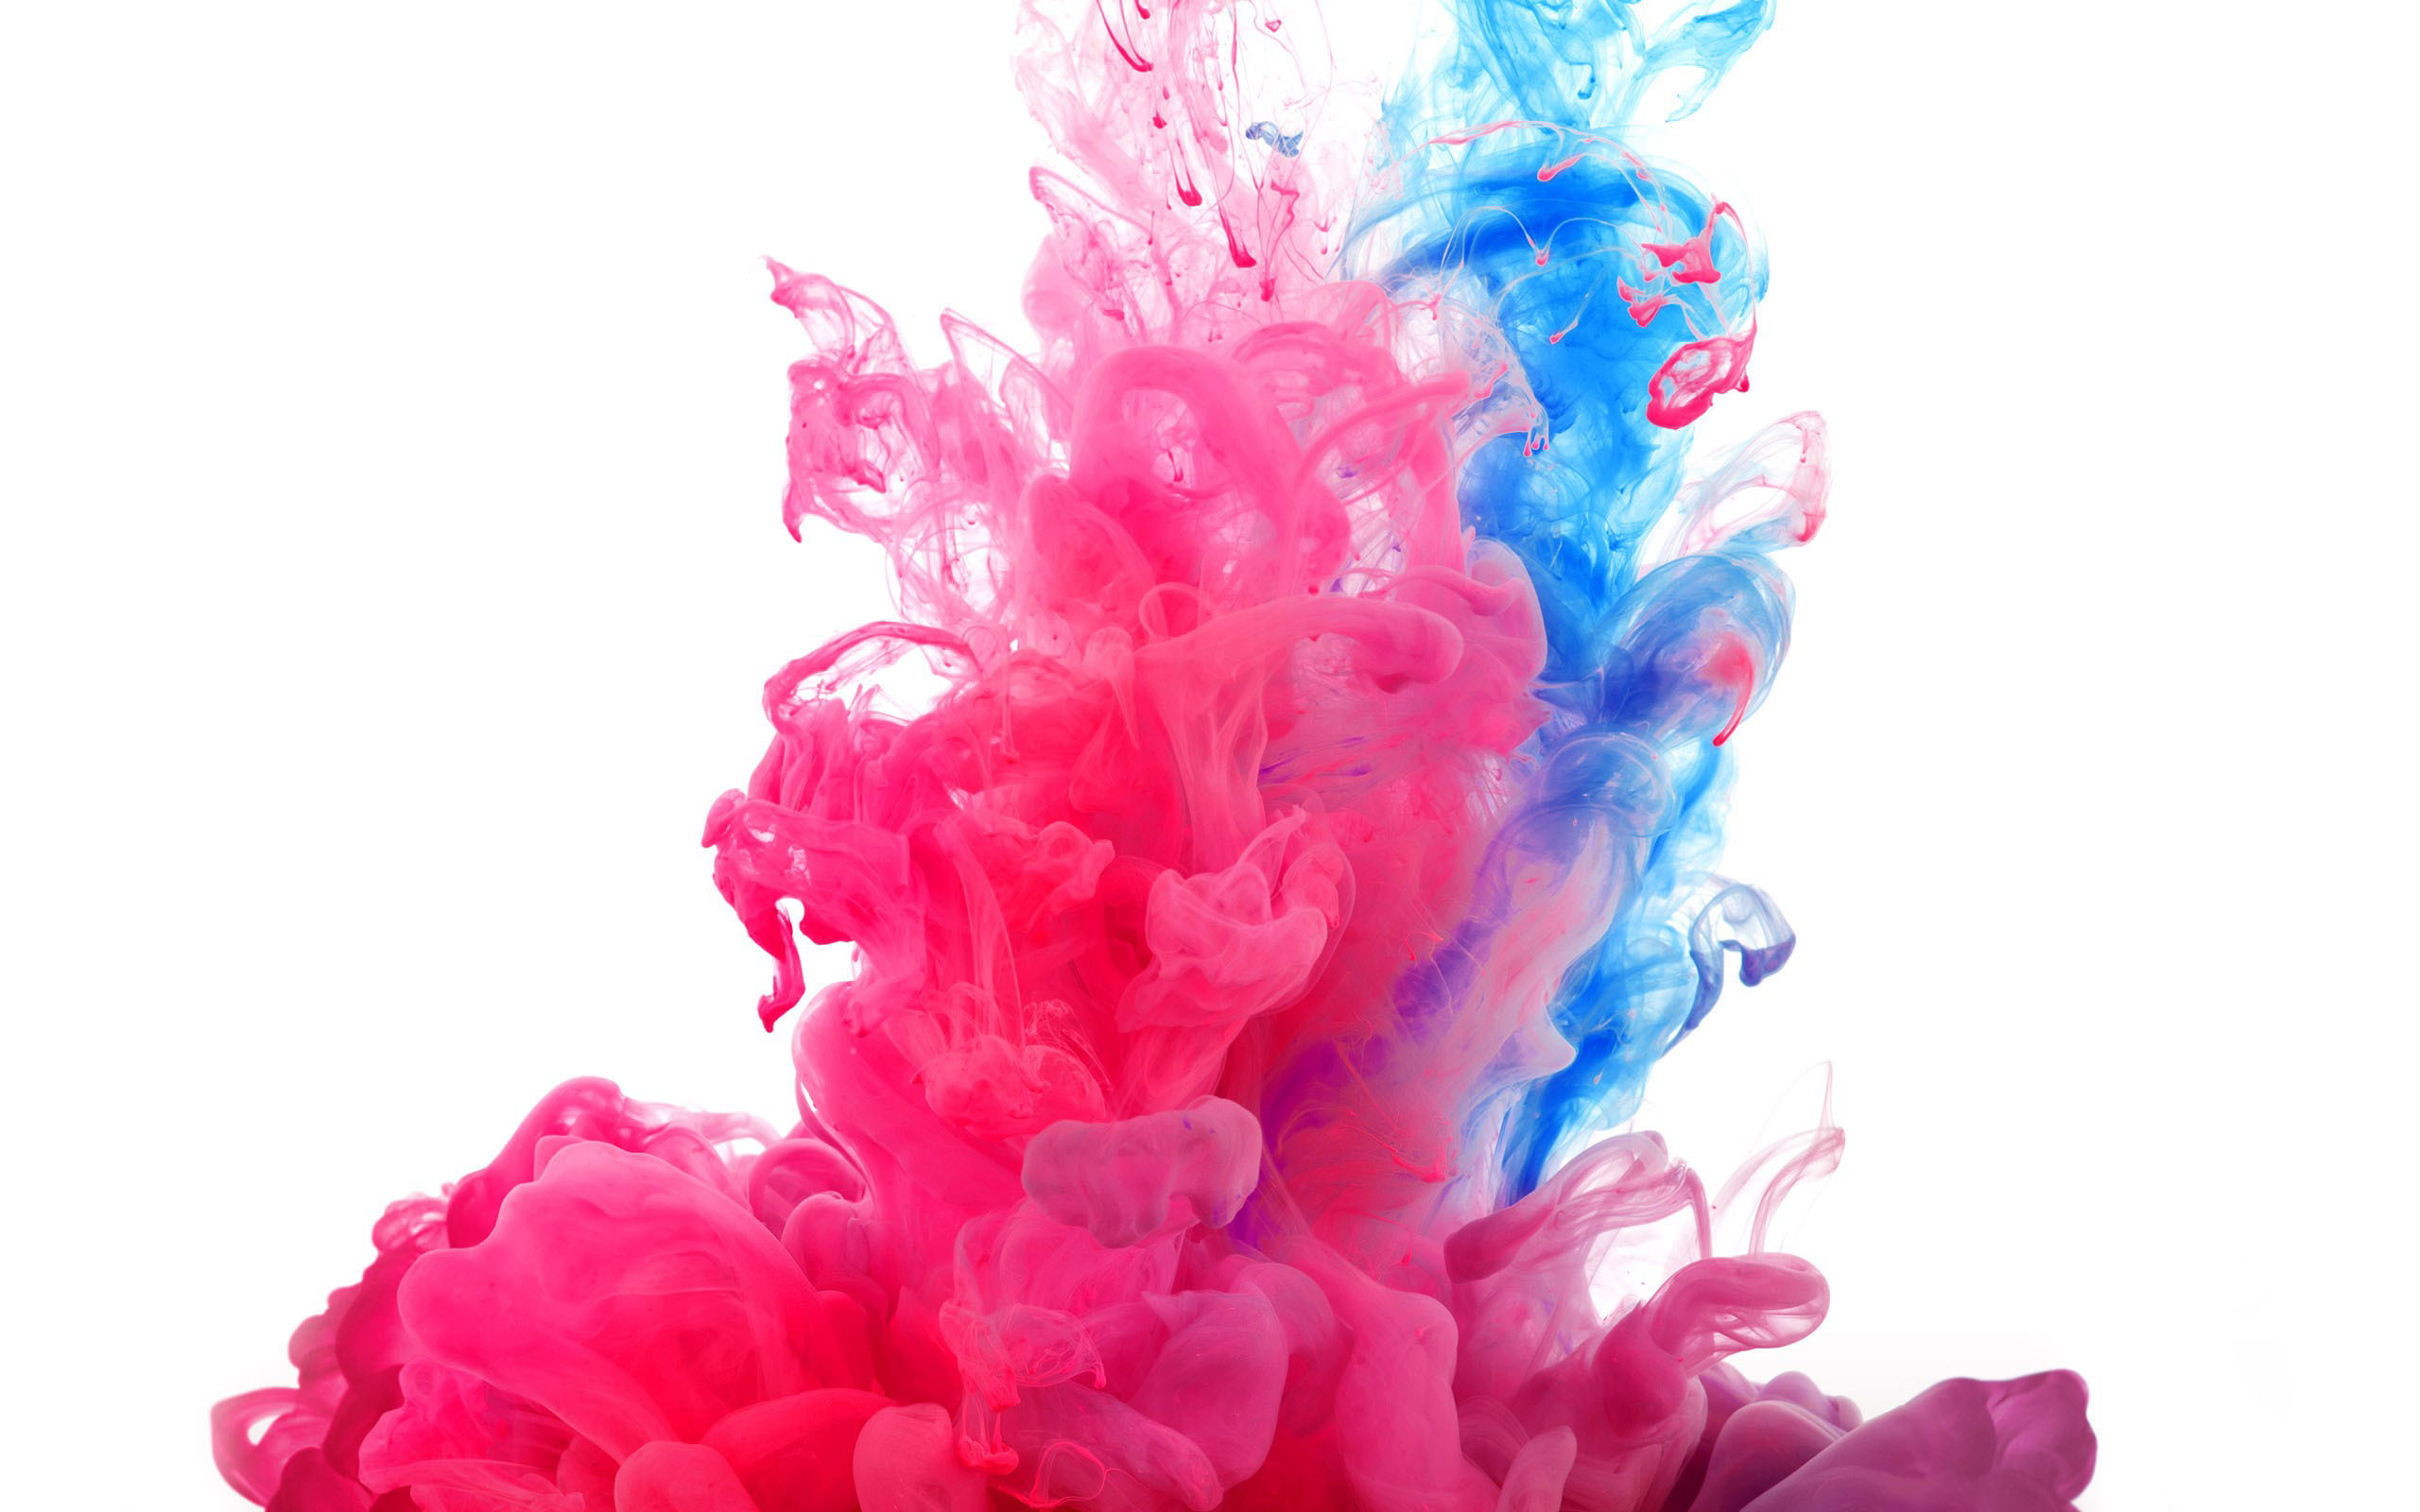 awesome abstract wallpapers pink - photo #31